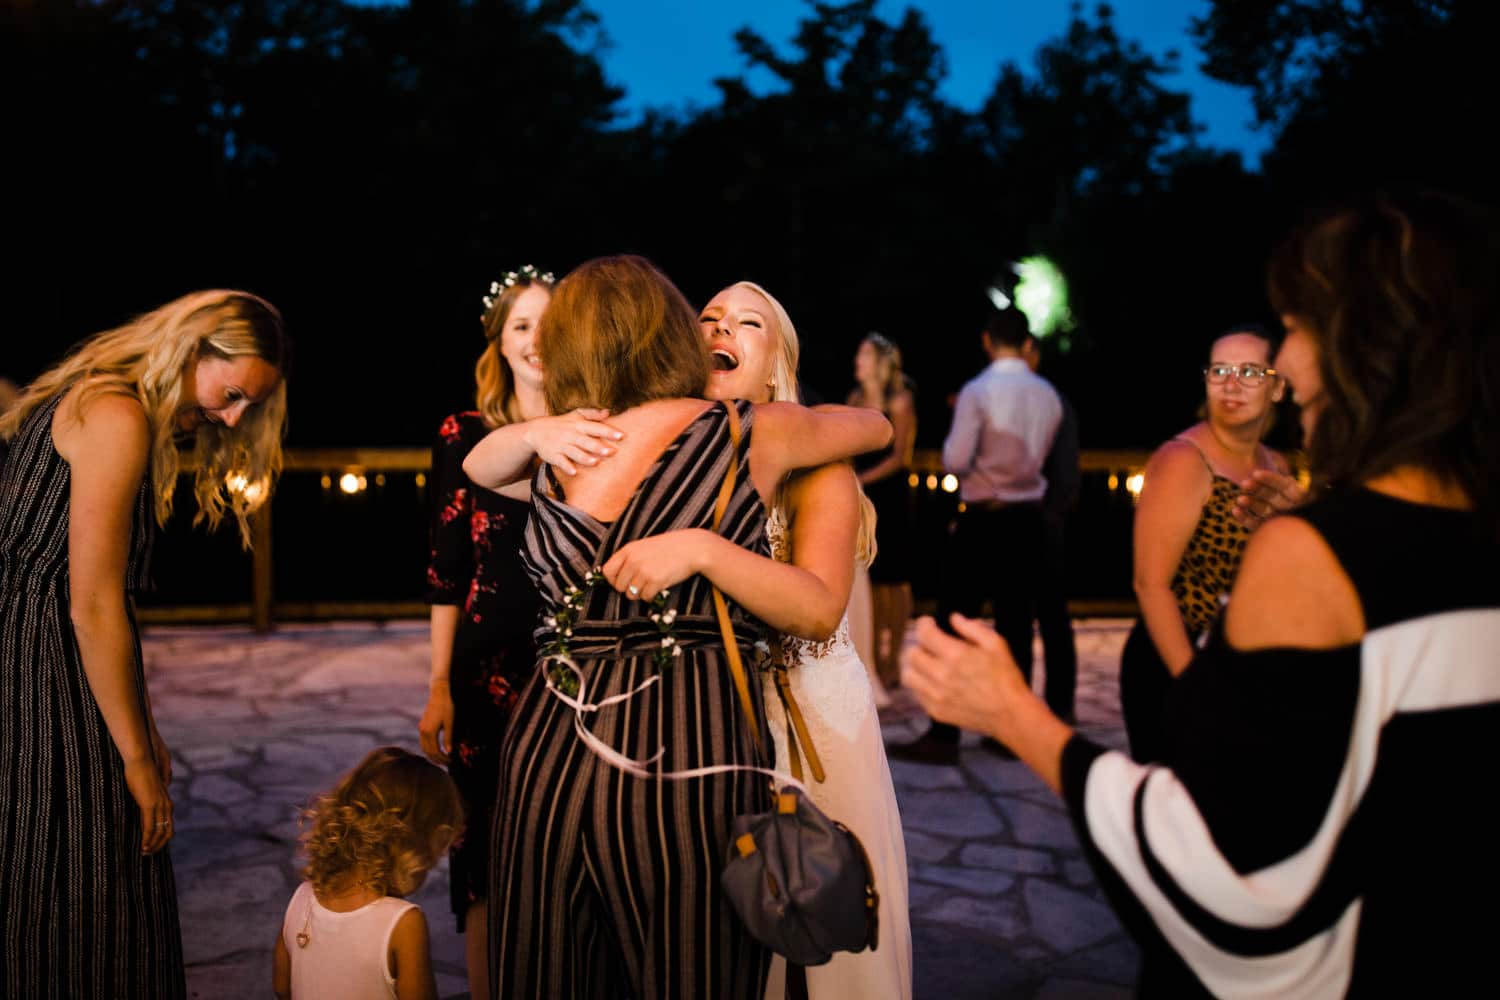 guests hug the bride as they arrive for outdoor wedding reception